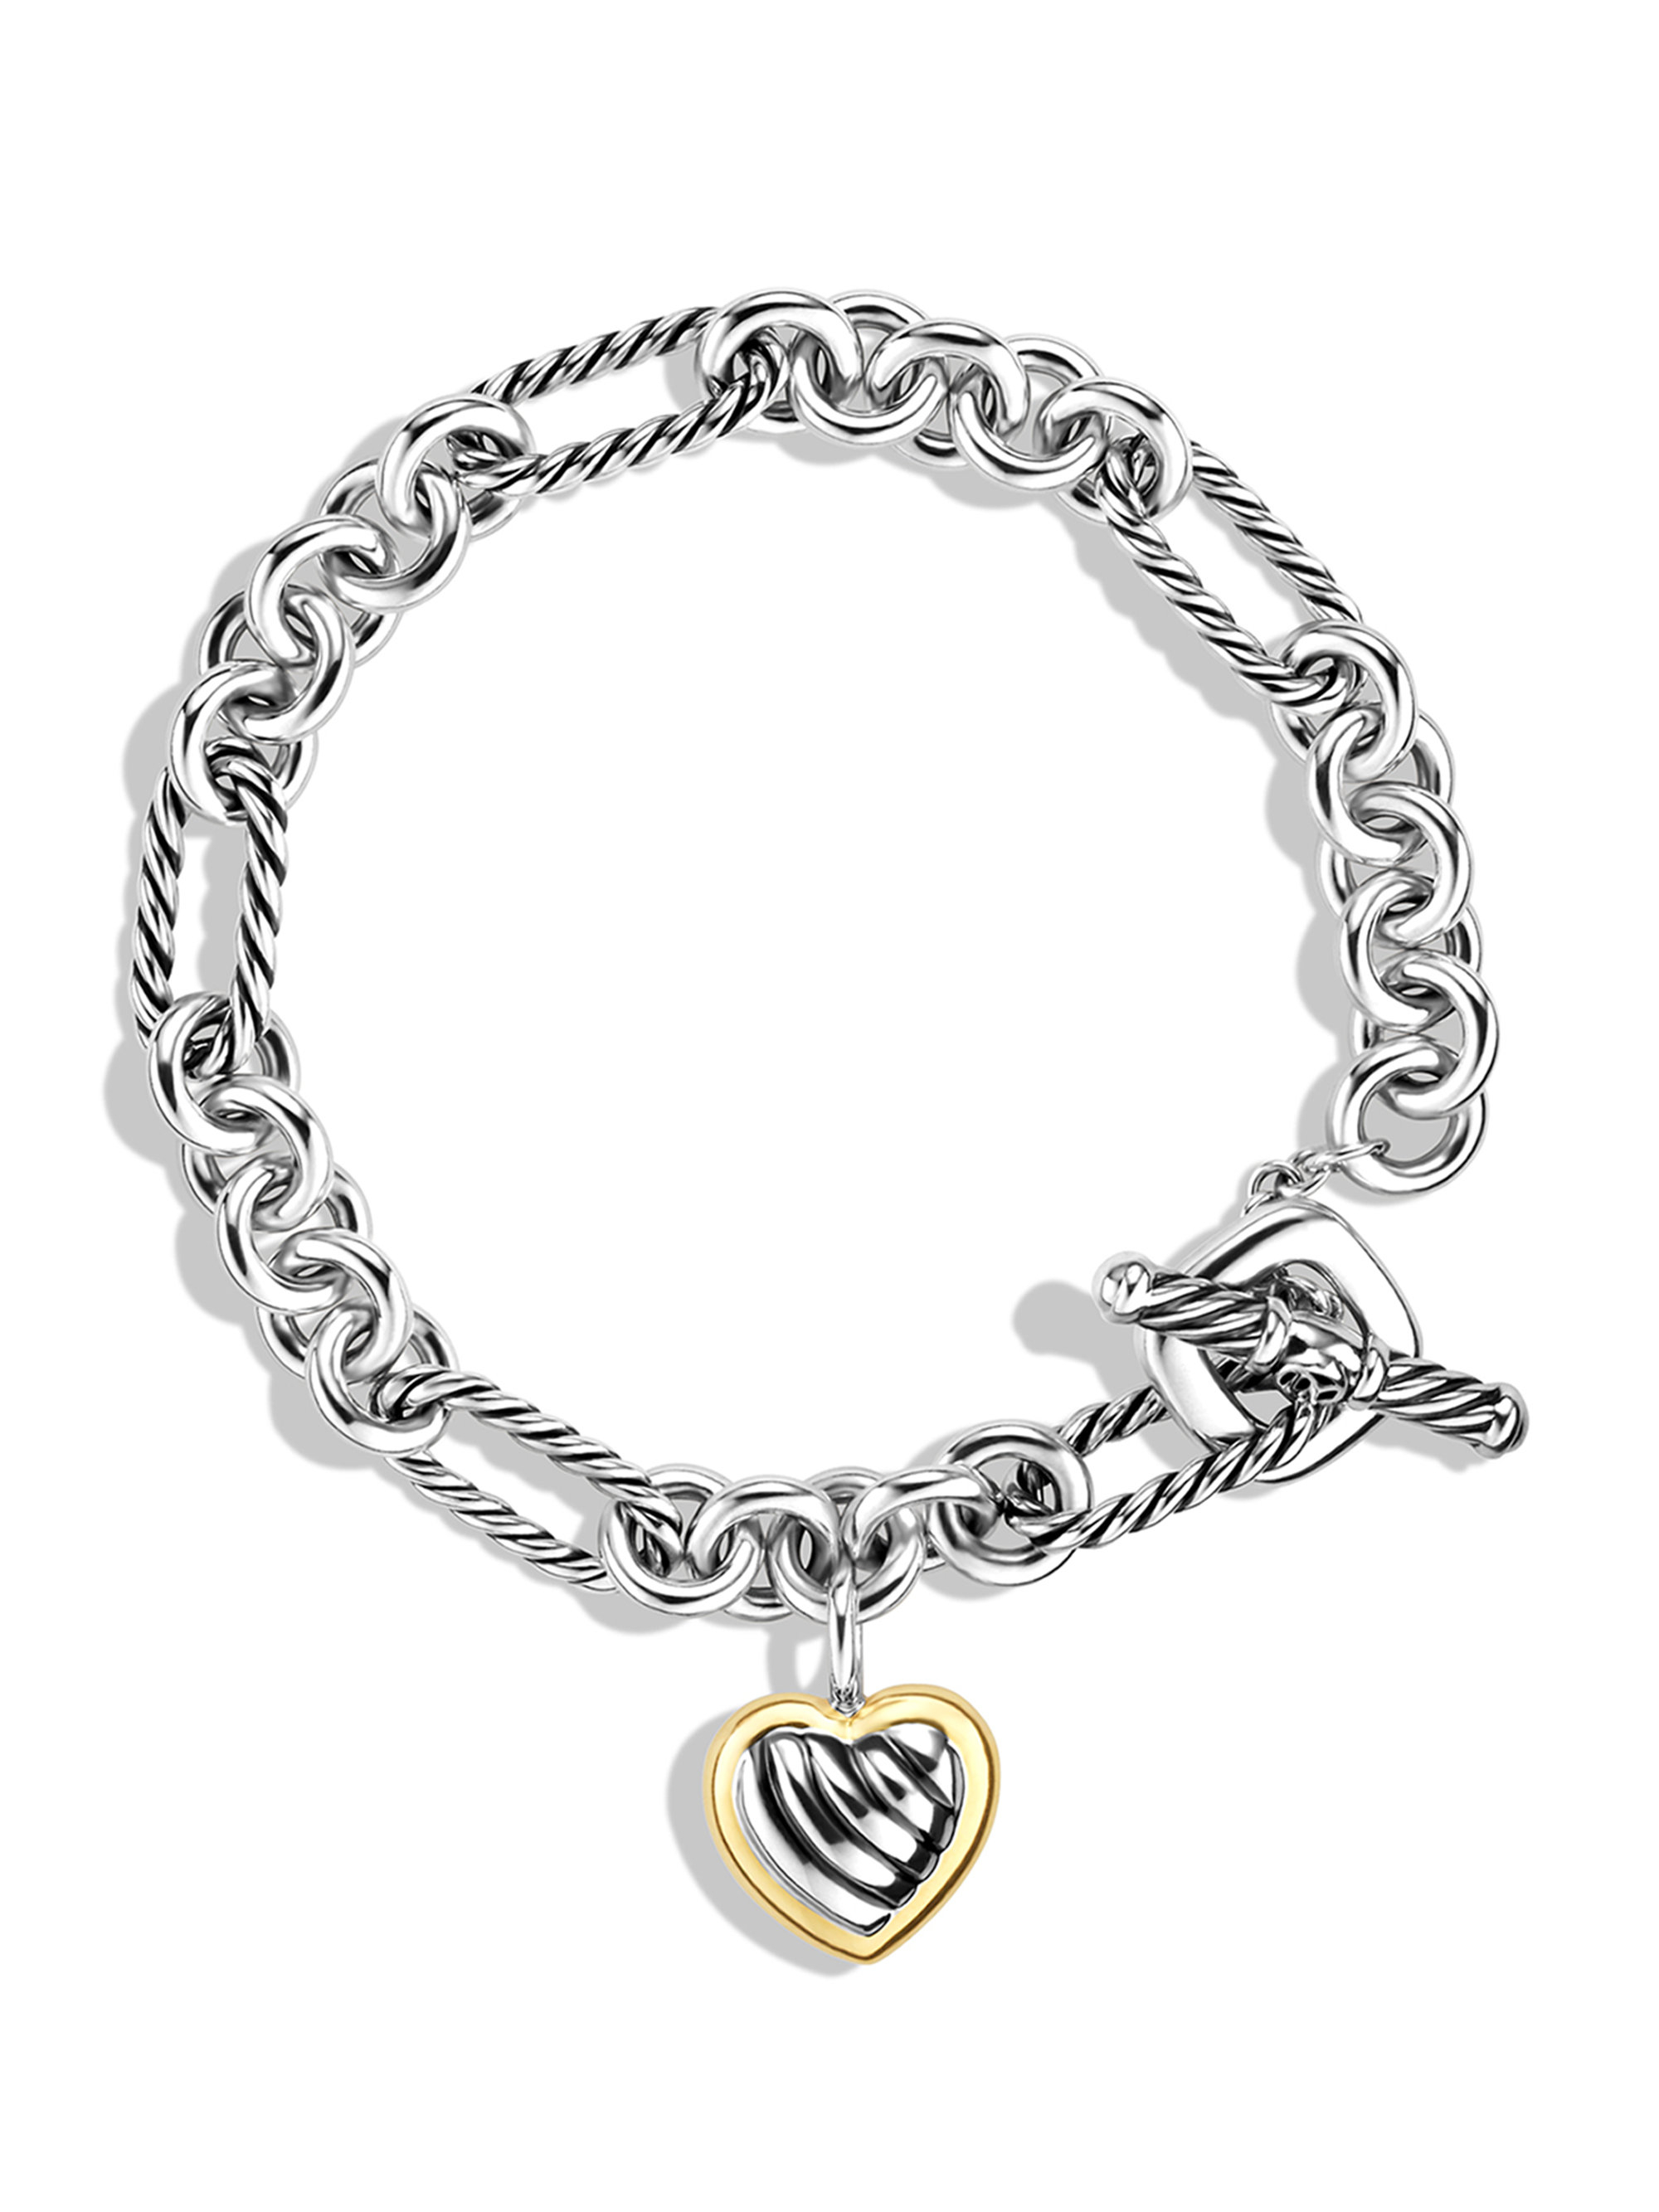 David yurman Cable Heart Charm Bracelet With Gold in Metallic